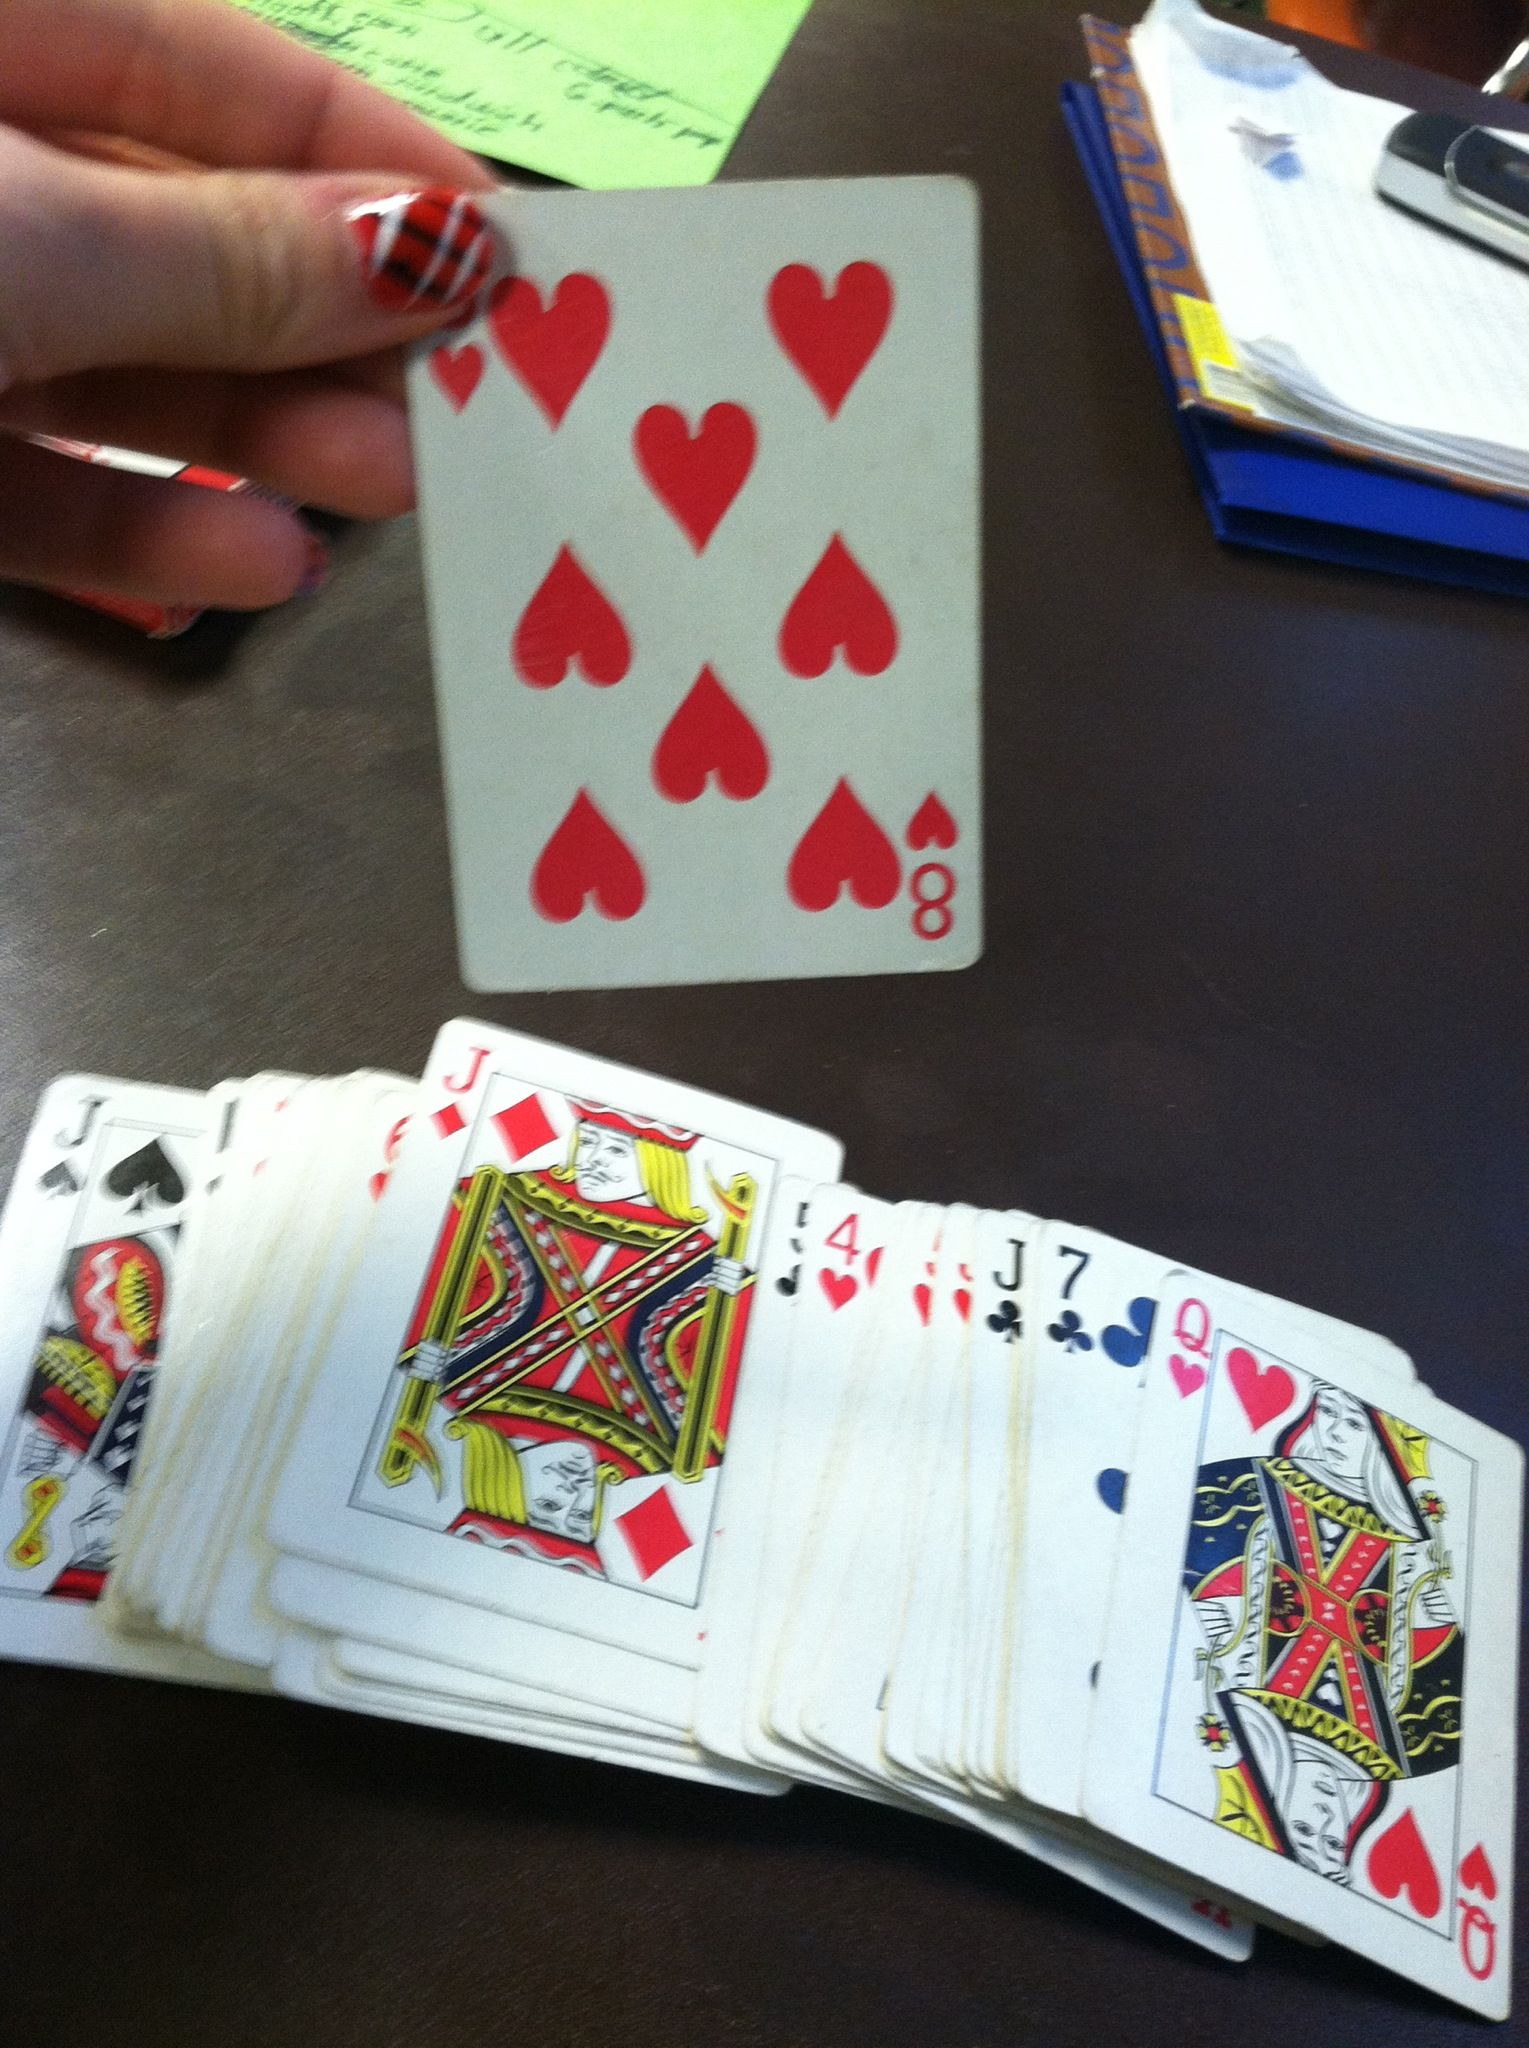 How To Do A Simple Card Trick For Kids Card Tricks For Kids